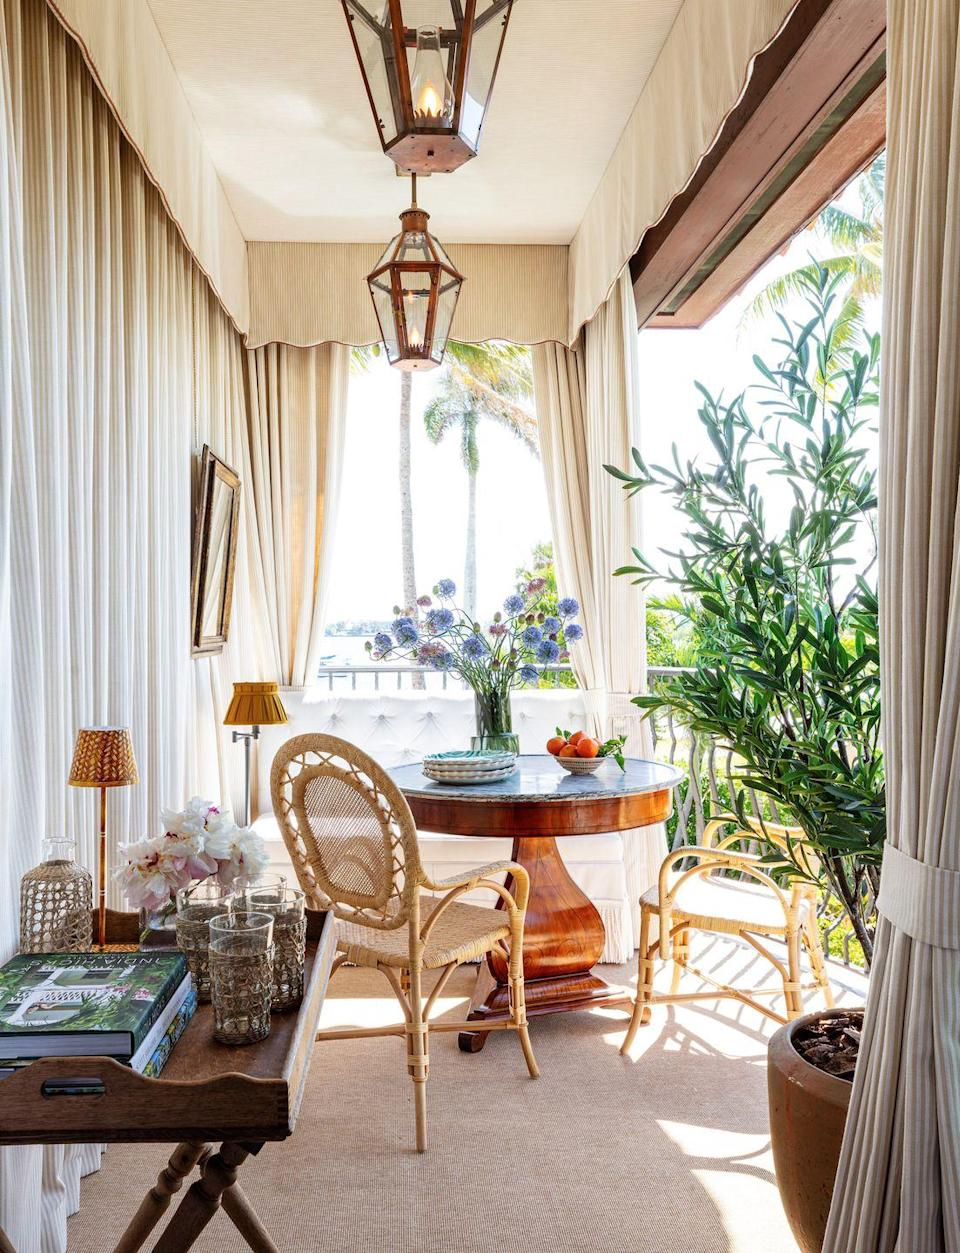 """<p>Channeling Marrakech glamour, this breezy loggia feels like a far-off escape. <a href=""""http://www.annabraund.com/"""" rel=""""nofollow noopener"""" target=""""_blank"""" data-ylk=""""slk:Braund"""" class=""""link rapid-noclick-resp"""">Braund</a> wrapped the space with custom drapes from <a href=""""http://www.perennialsandsutherland.com/our-companies/perennials-fabrics/index.html"""" rel=""""nofollow noopener"""" target=""""_blank"""" data-ylk=""""slk:Sutherland Perennials"""" class=""""link rapid-noclick-resp"""">Sutherland Perennials</a> and added rattan chairs from <a href=""""https://bungalowclassic.com/"""" rel=""""nofollow noopener"""" target=""""_blank"""" data-ylk=""""slk:Bungalow Classic"""" class=""""link rapid-noclick-resp"""">Bungalow Classic</a> and an antique cherrywood table from <a href=""""https://robuck.co/"""" rel=""""nofollow noopener"""" target=""""_blank"""" data-ylk=""""slk:Robuck"""" class=""""link rapid-noclick-resp"""">Robuck</a> to create an intimate alfresco sitting space. </p>"""